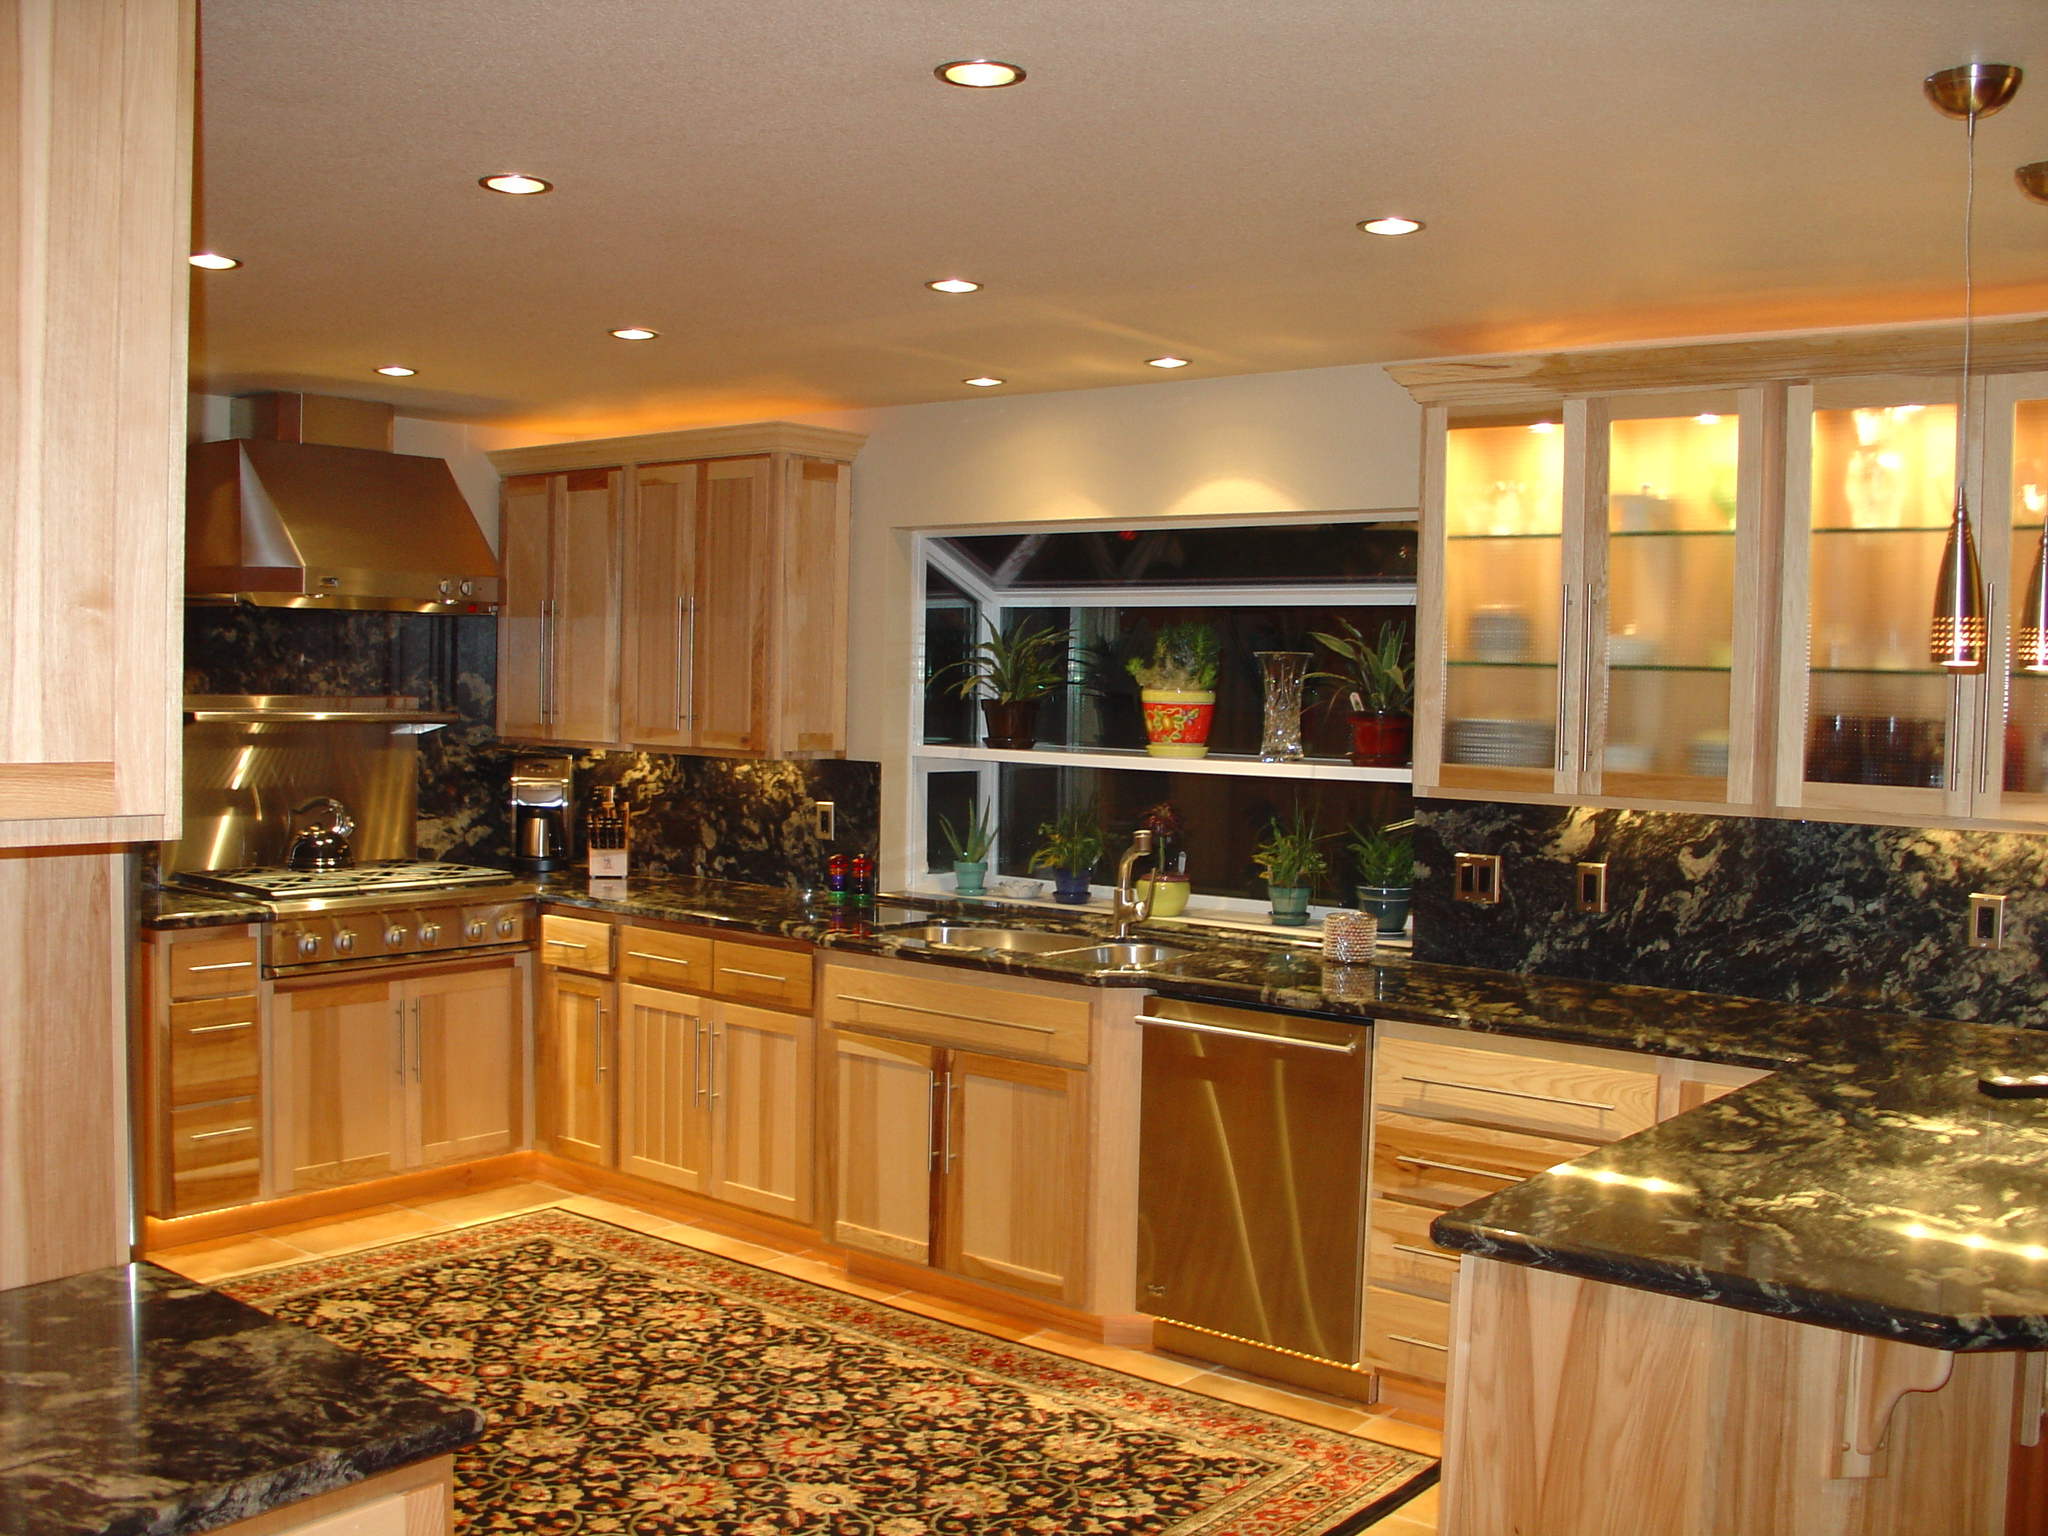 Kitchen with range and sink, dark counters and light sanded cabinets